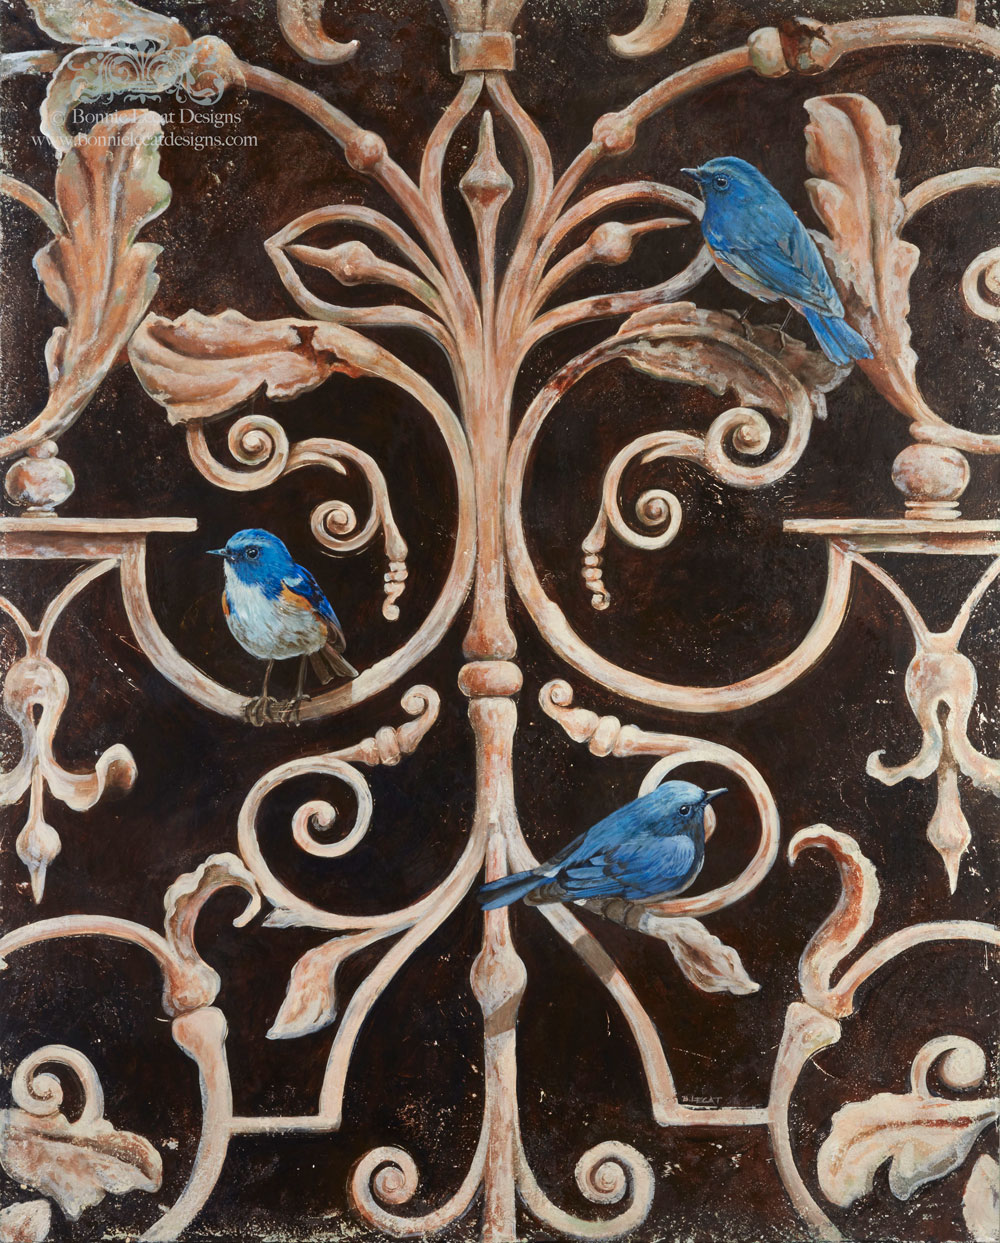 Three bluebirds rest on an iron gate in this contemporary acrylic painting by Chicago artist Bonnie Lecat